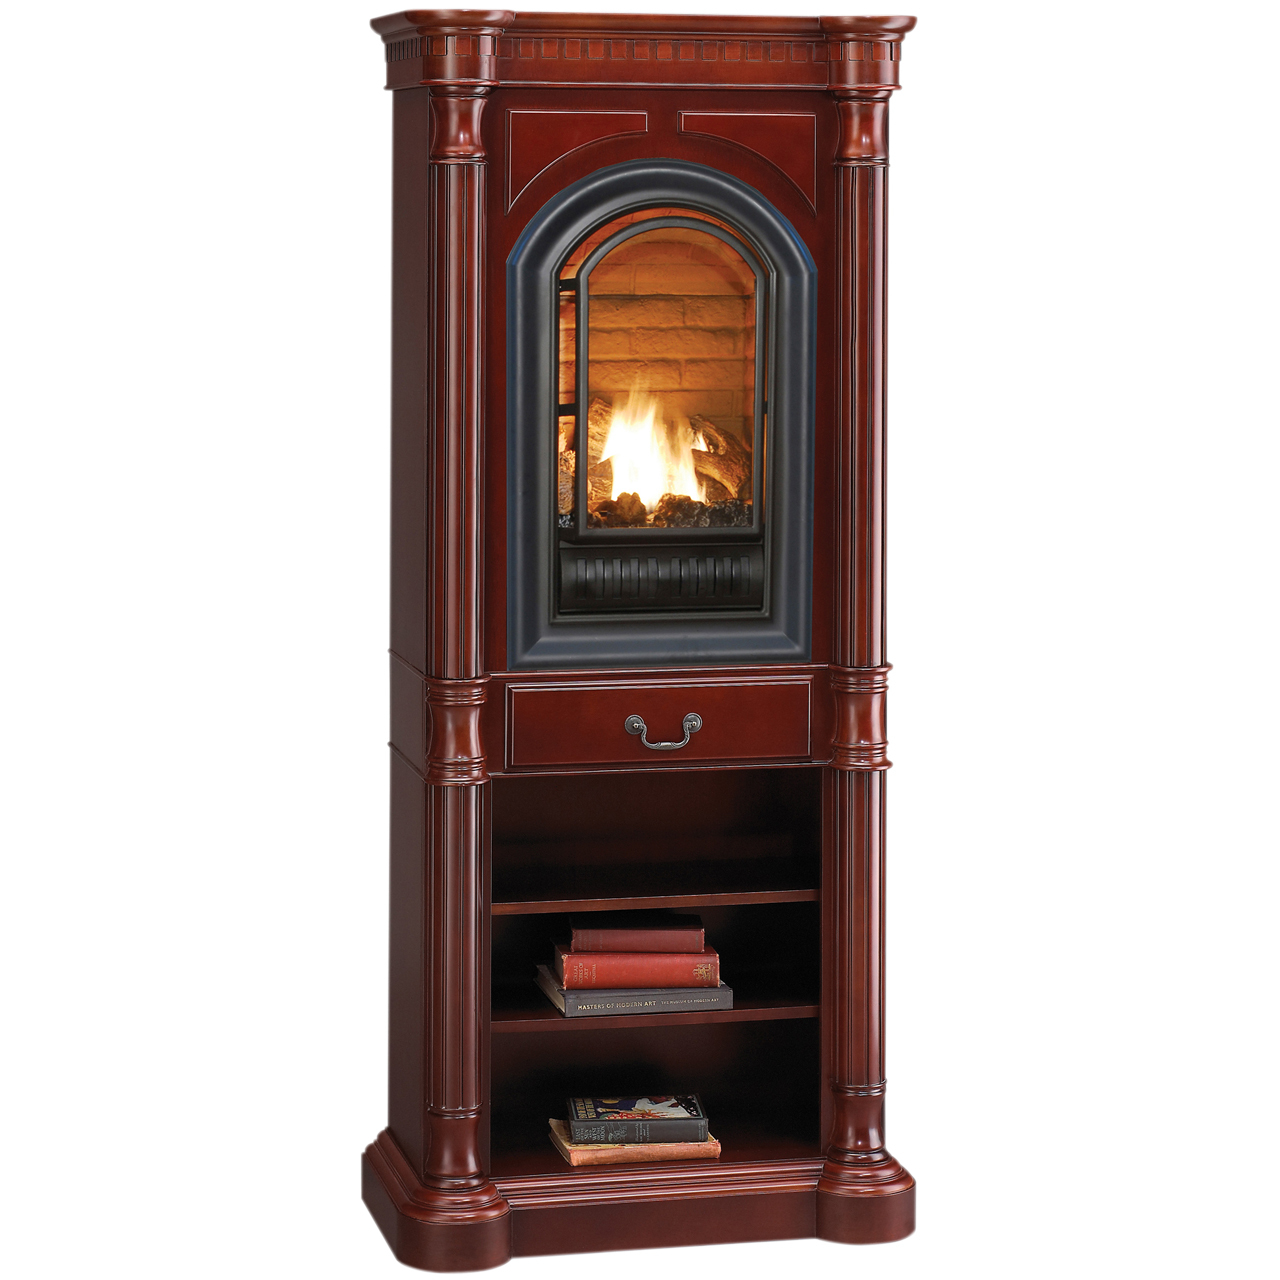 hearthsense natural gas ventless gas tower fireplace 20 000 btu cherry finish factory buys. Black Bedroom Furniture Sets. Home Design Ideas